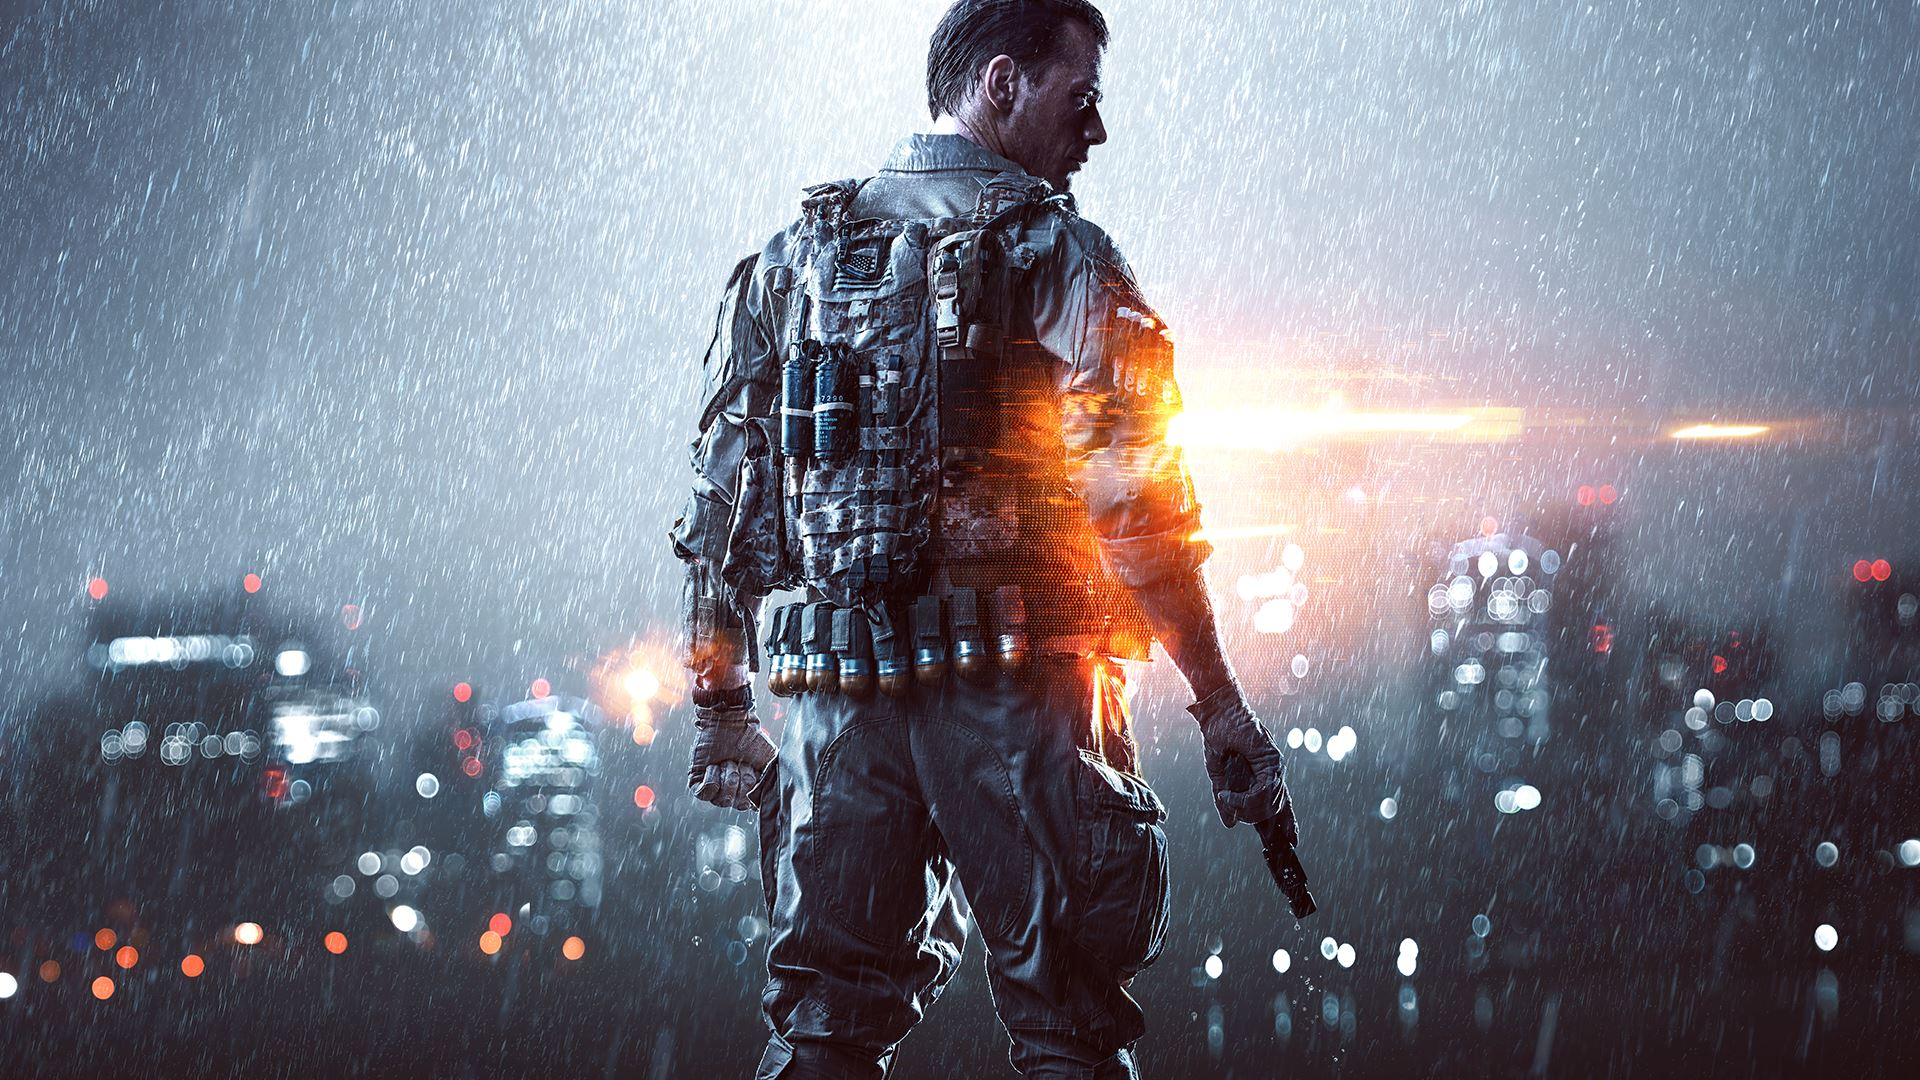 HD Quality Wallpaper   Collection: Video Game, 1920x1080 Battlefield 4